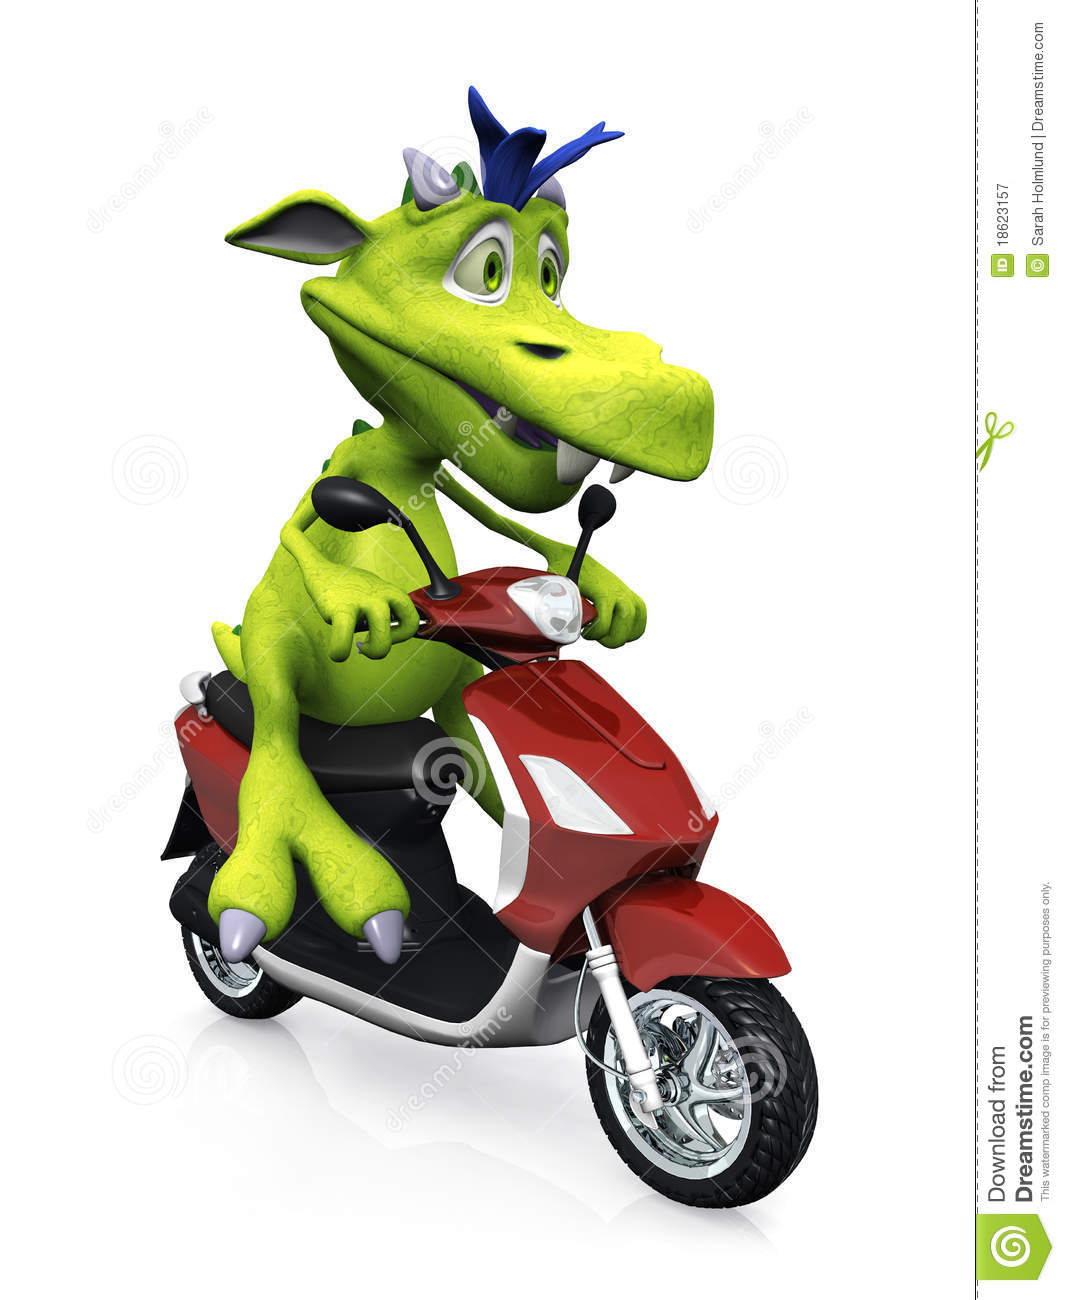 Cute Cartoon Monster On A Scooter Royalty Free Stock